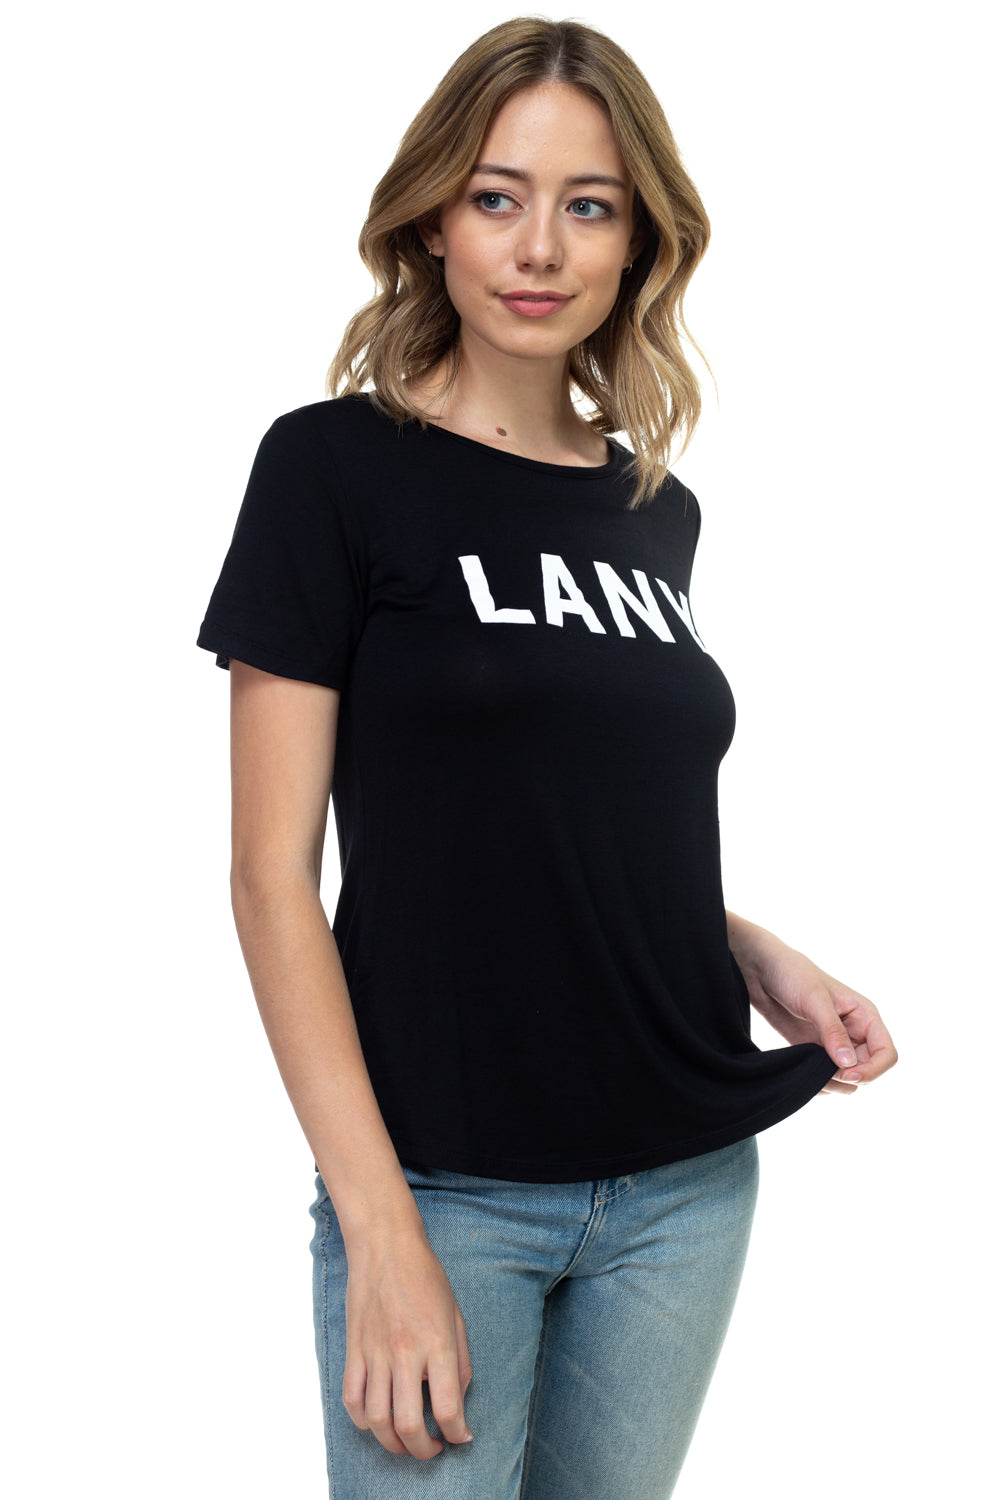 Strappy Back Tee - LANY